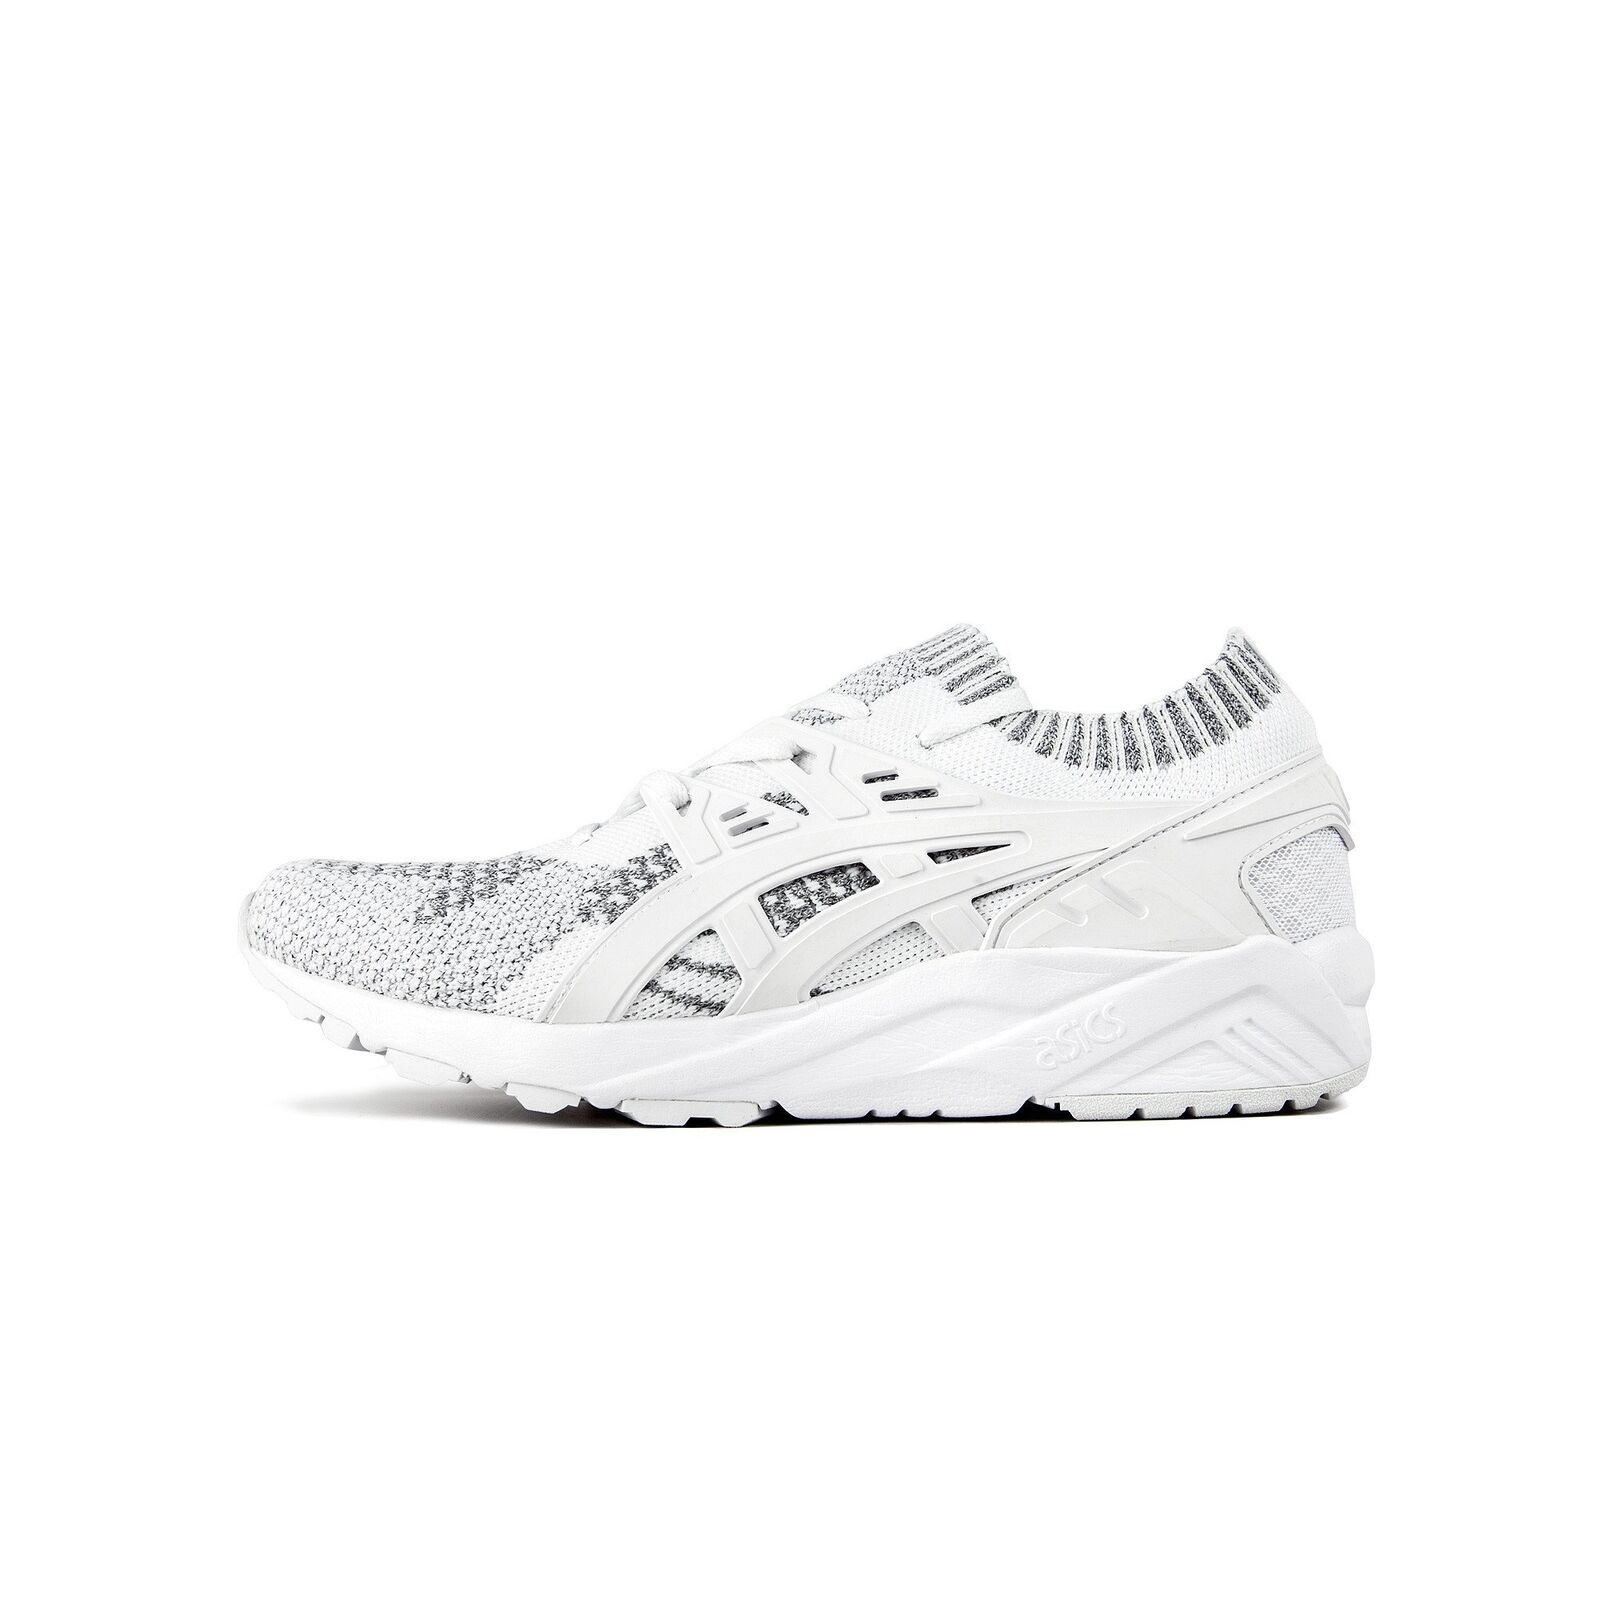 Mens Asics Gel Kayano Trainer Knit 3M Silver White H7S3N-9301